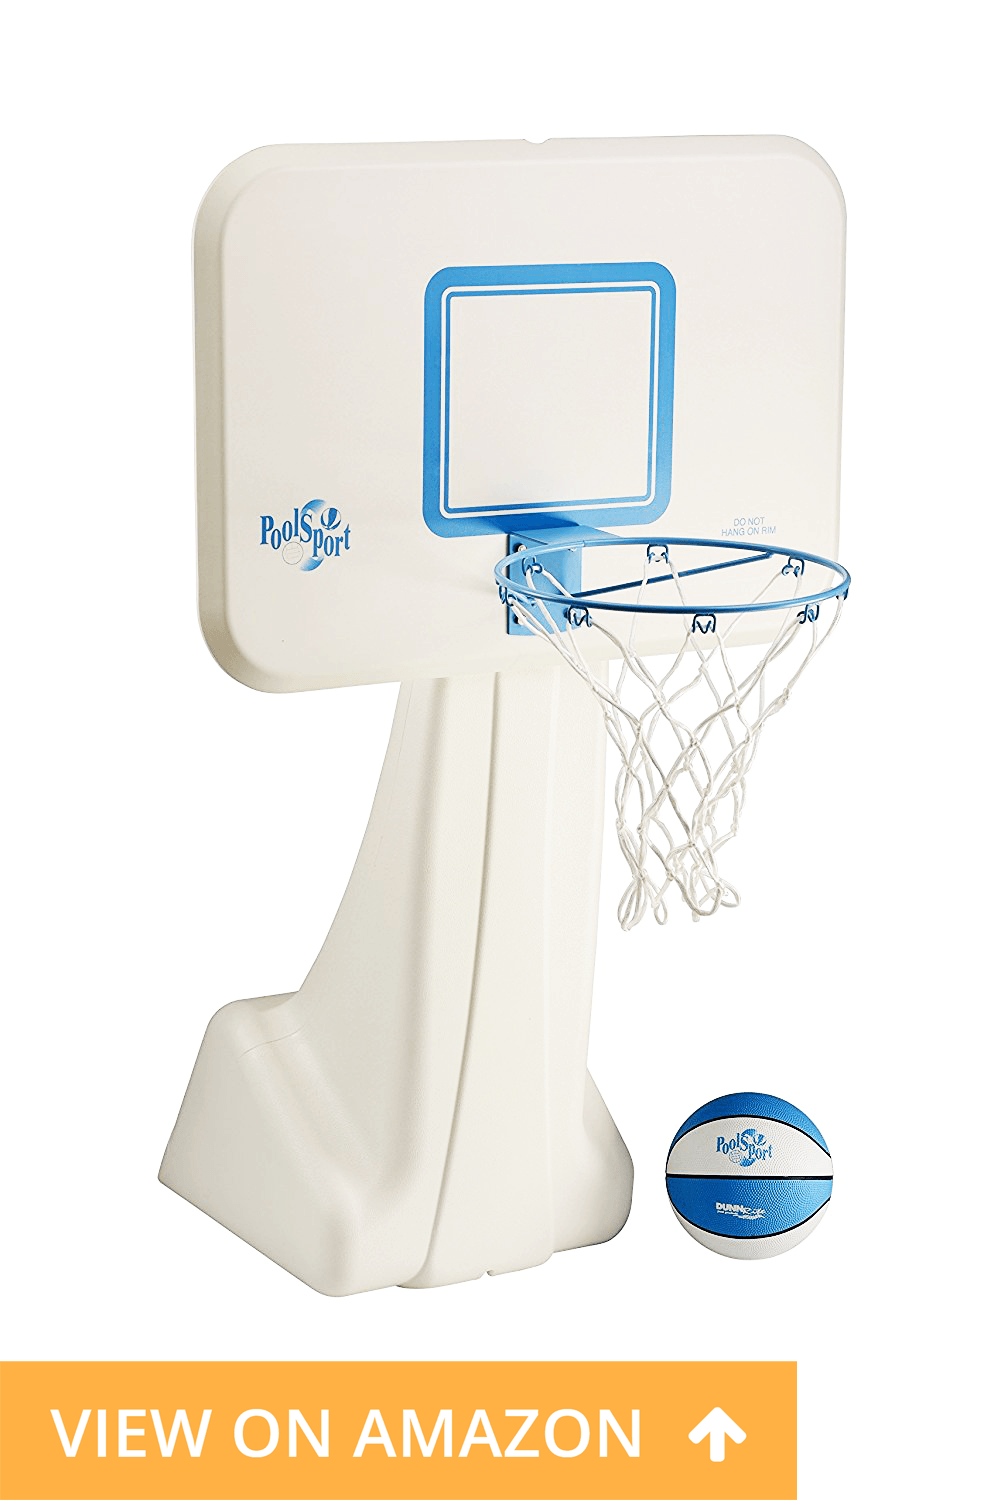 Dunnrite PoolSport pool basketball (B950)